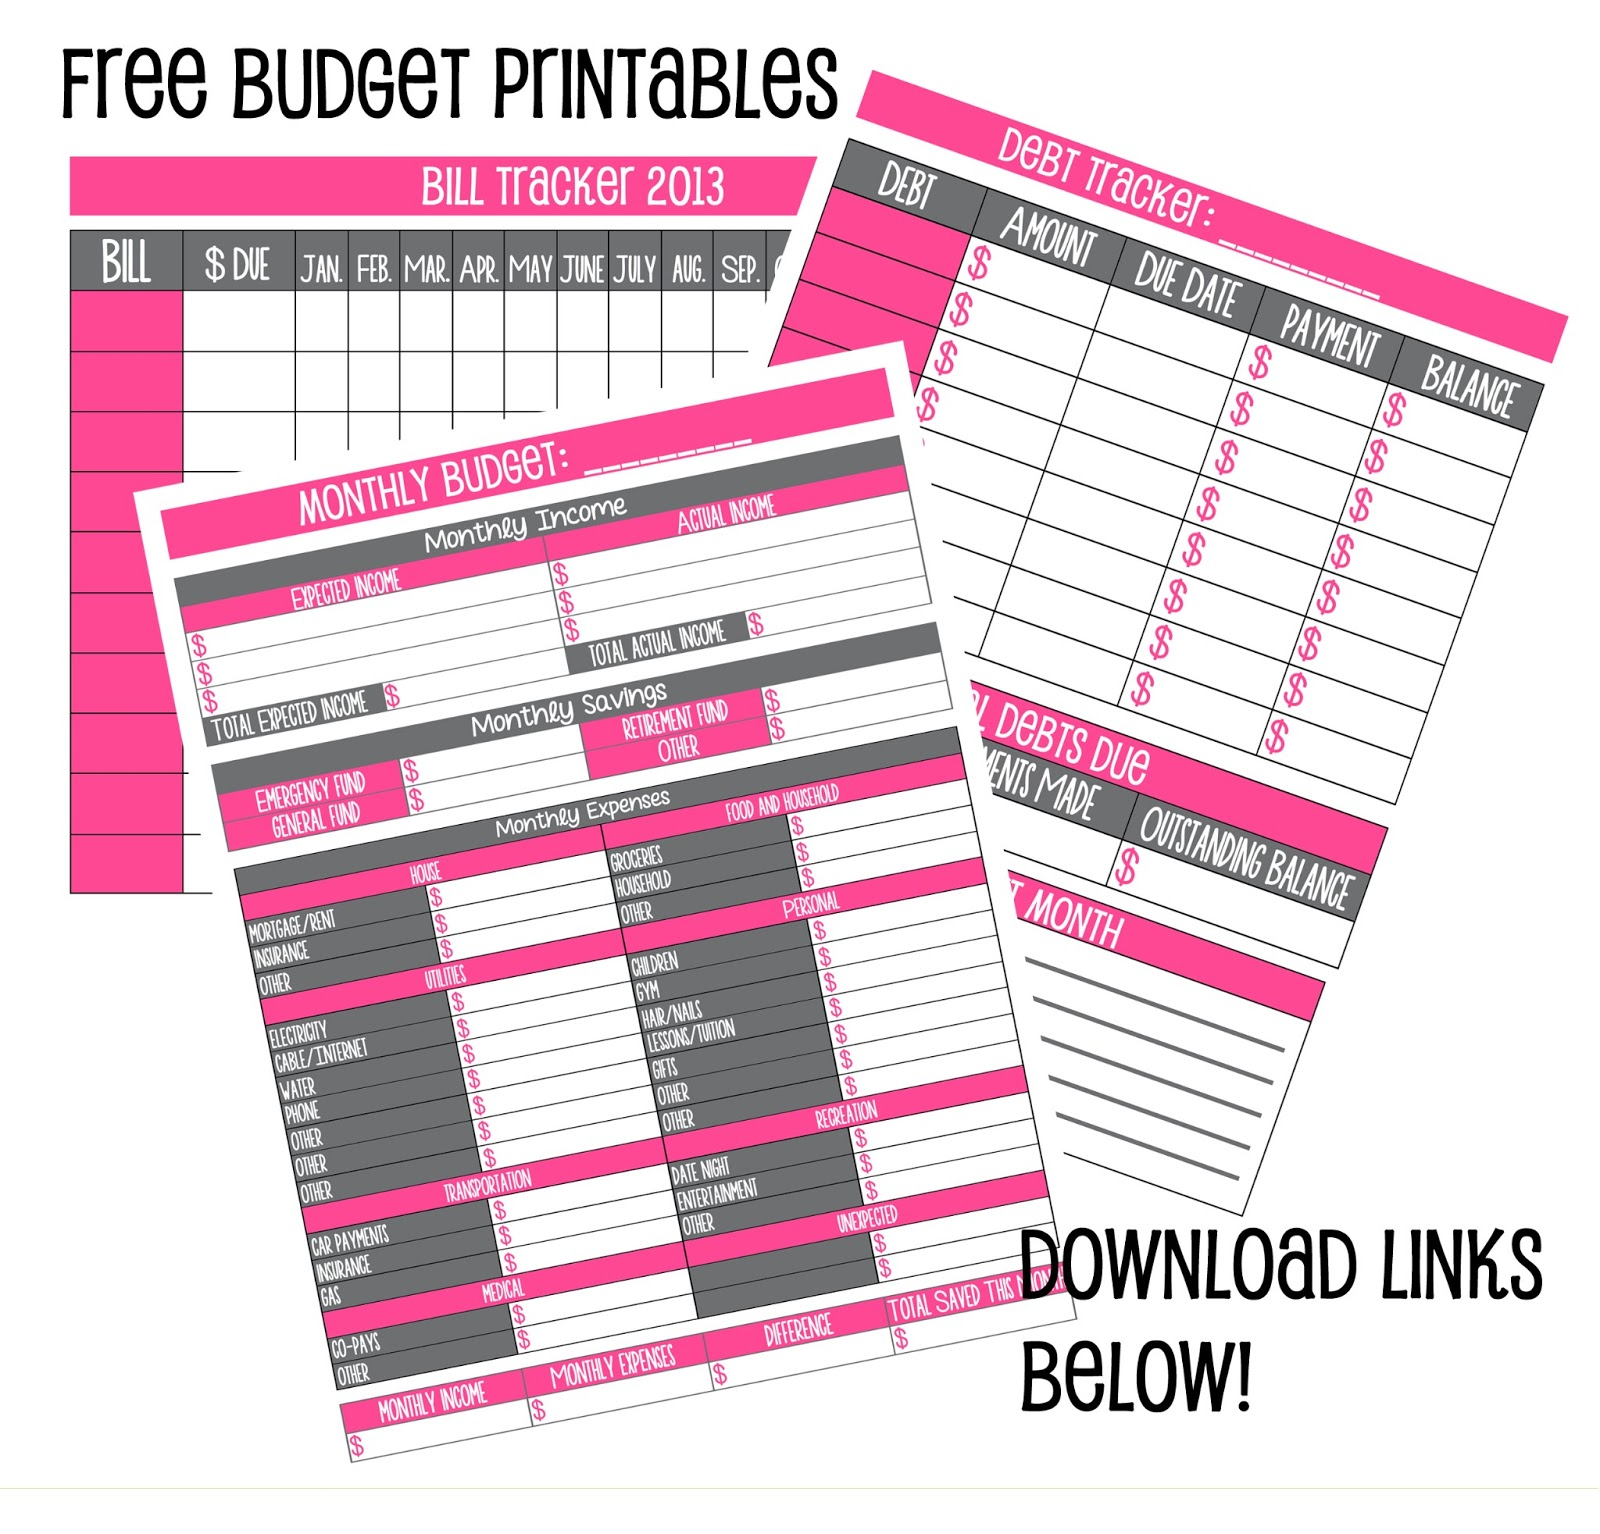 7 Images of Free Budget Printables